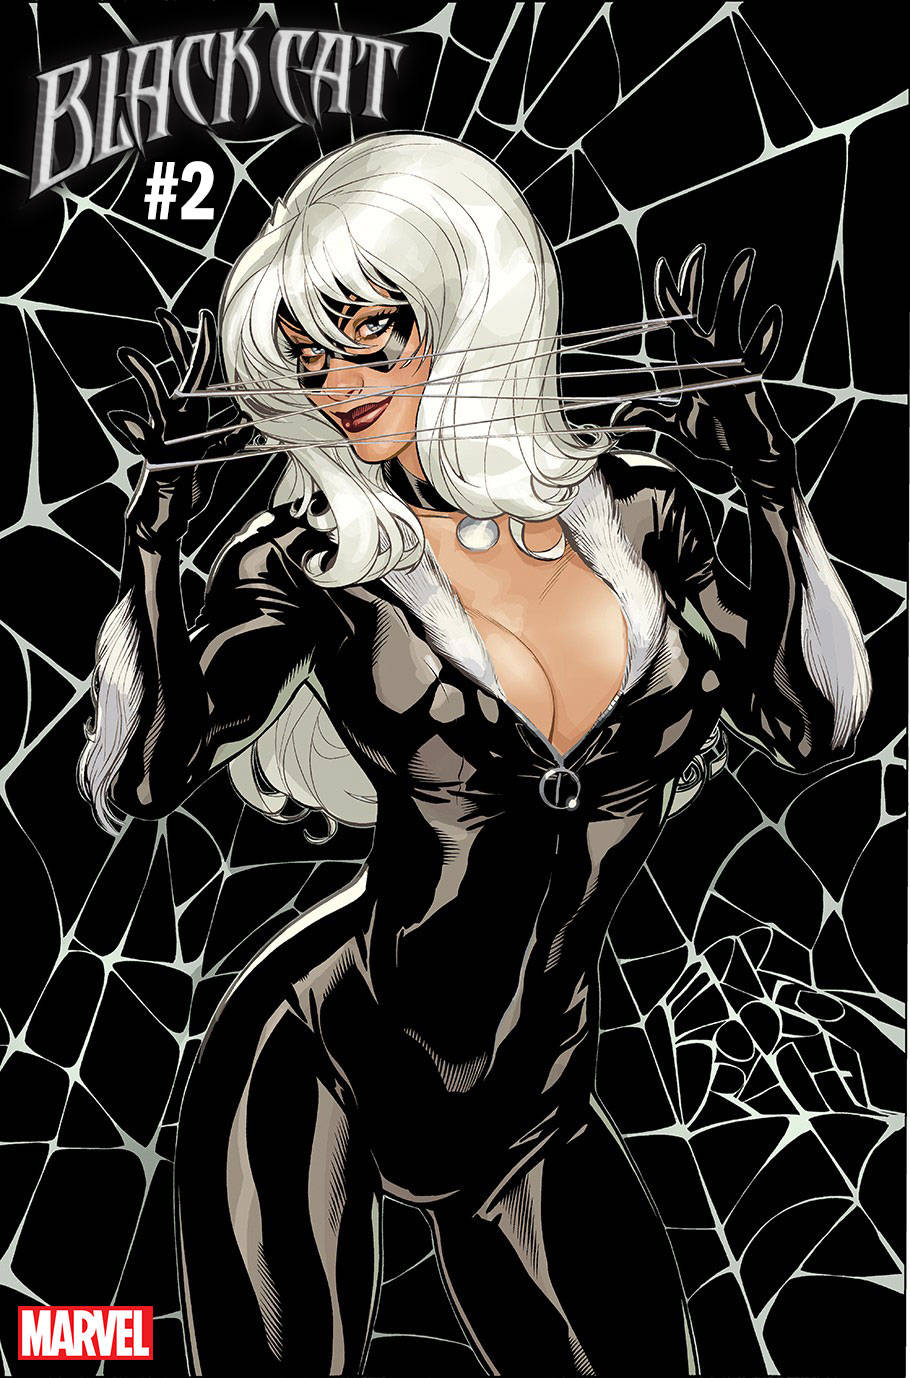 BLACK CAT 2 DODSON HIDDEN GEM VAR.jpg